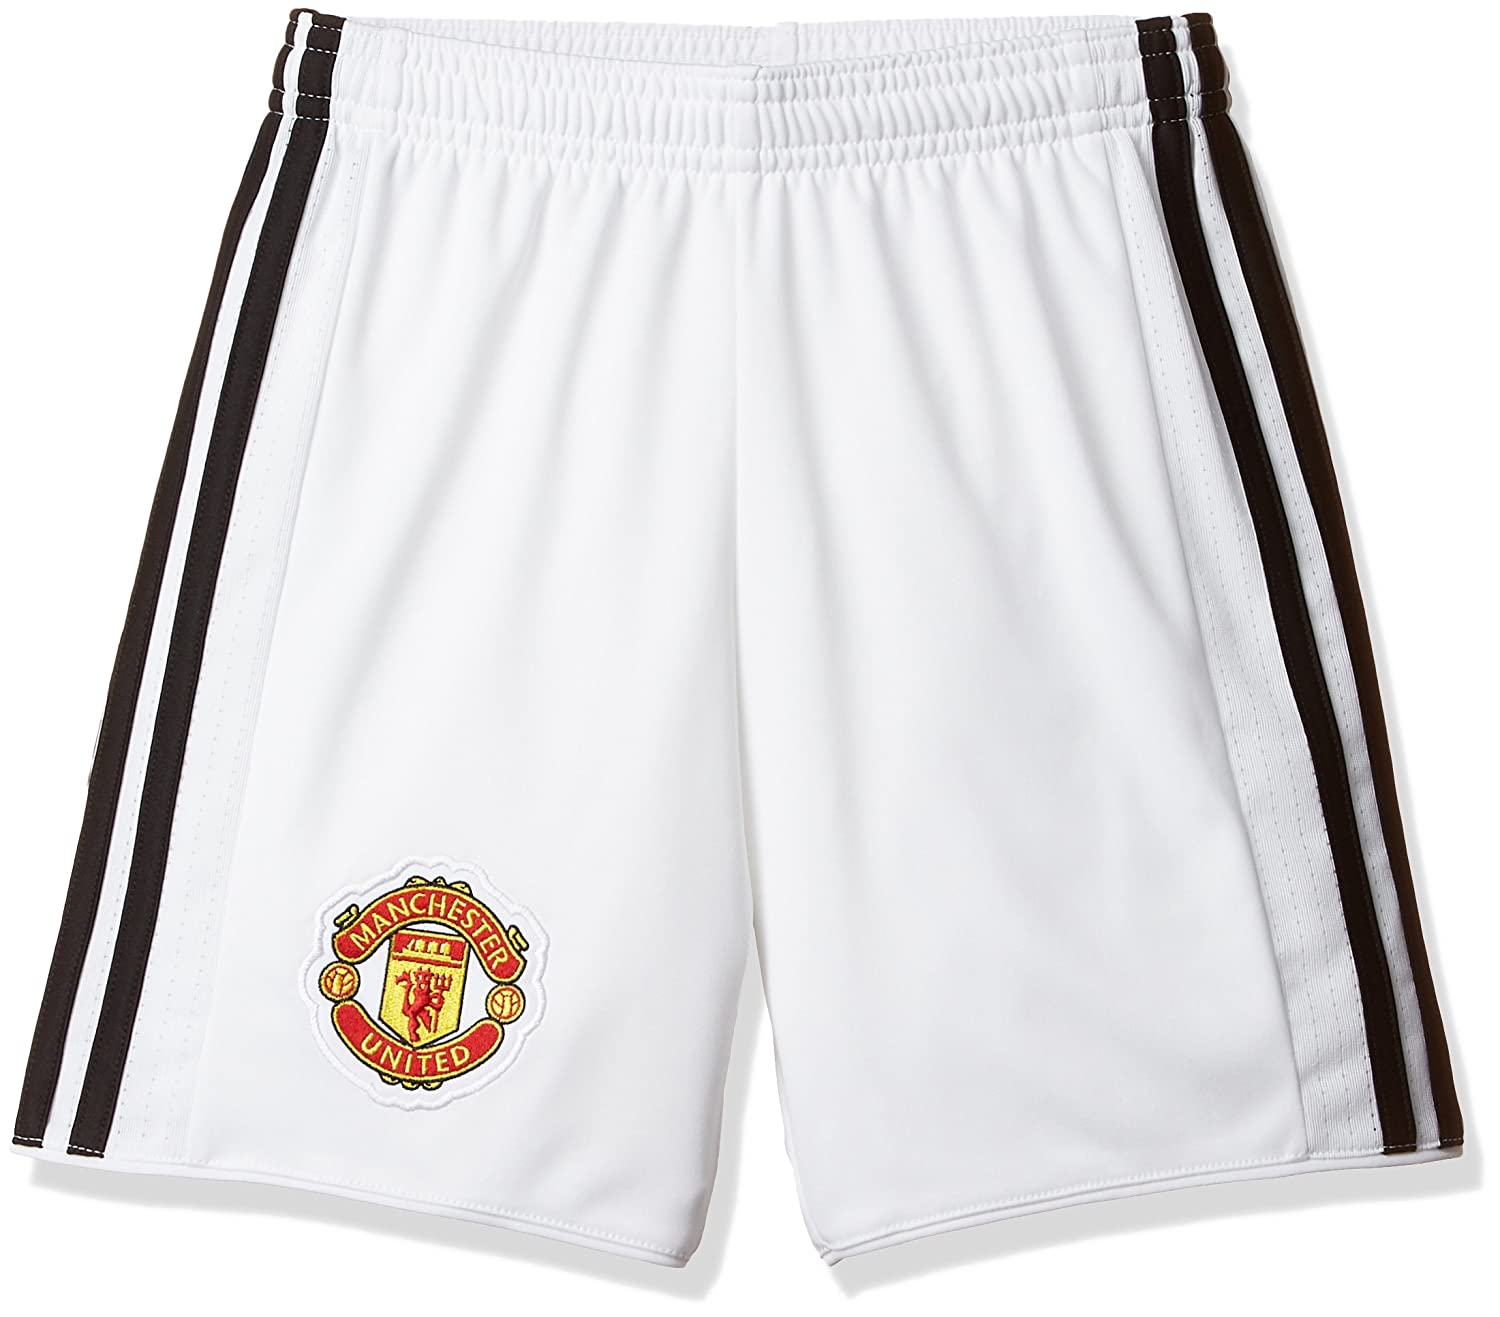 adidas Children's Replica Manchester United Home Football Shorts, Children's, AZ7579, white/black Children' s